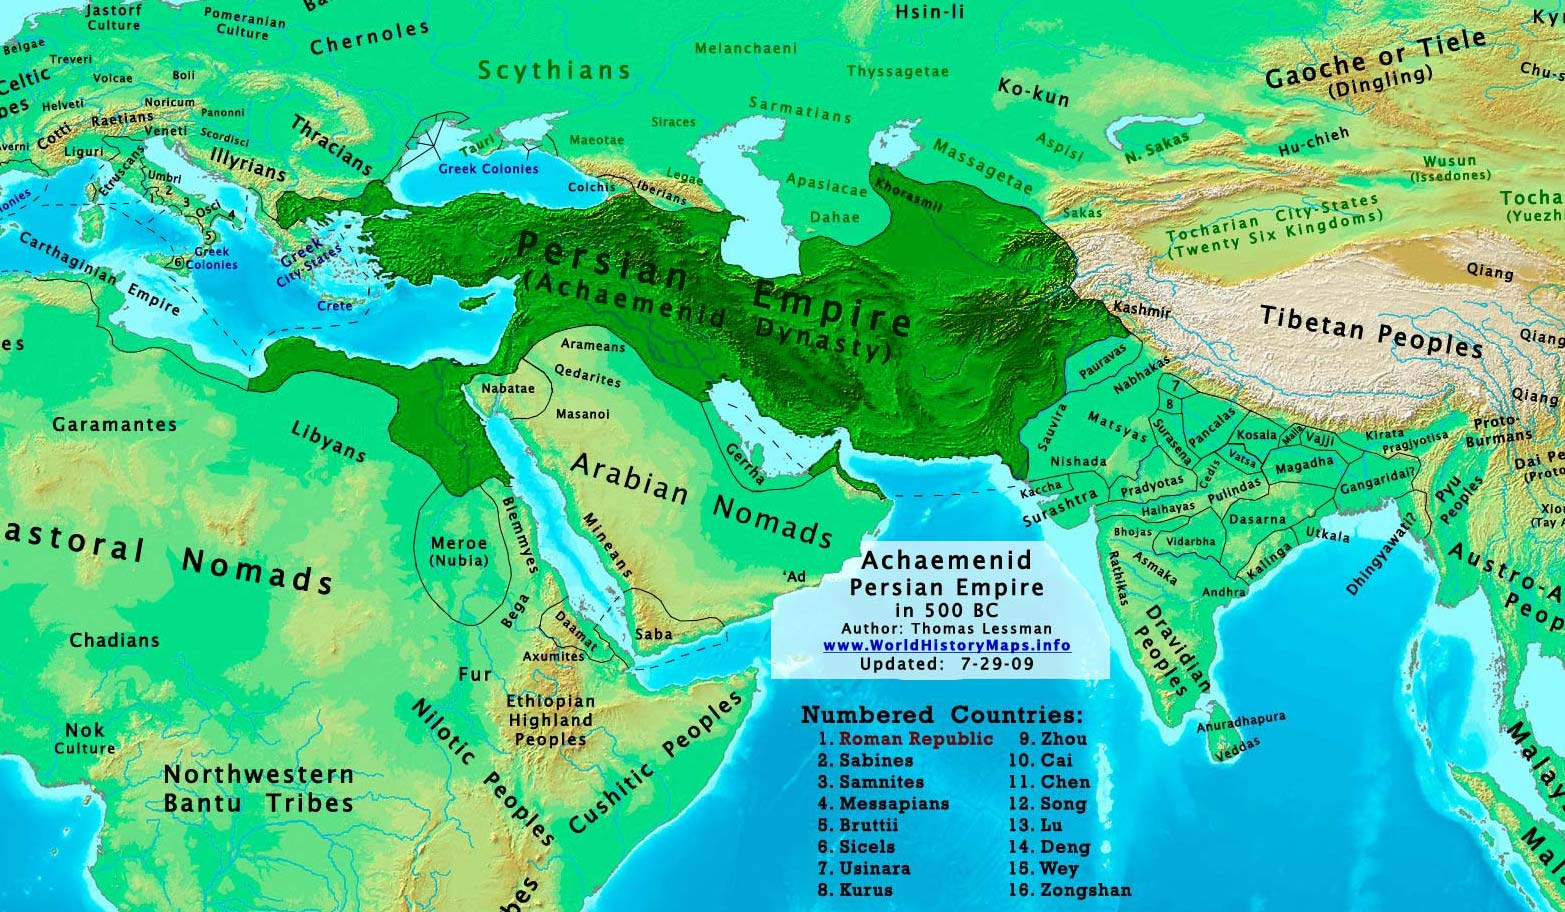 World history maps by thomas lessman achaemenid empire gumiabroncs Image collections